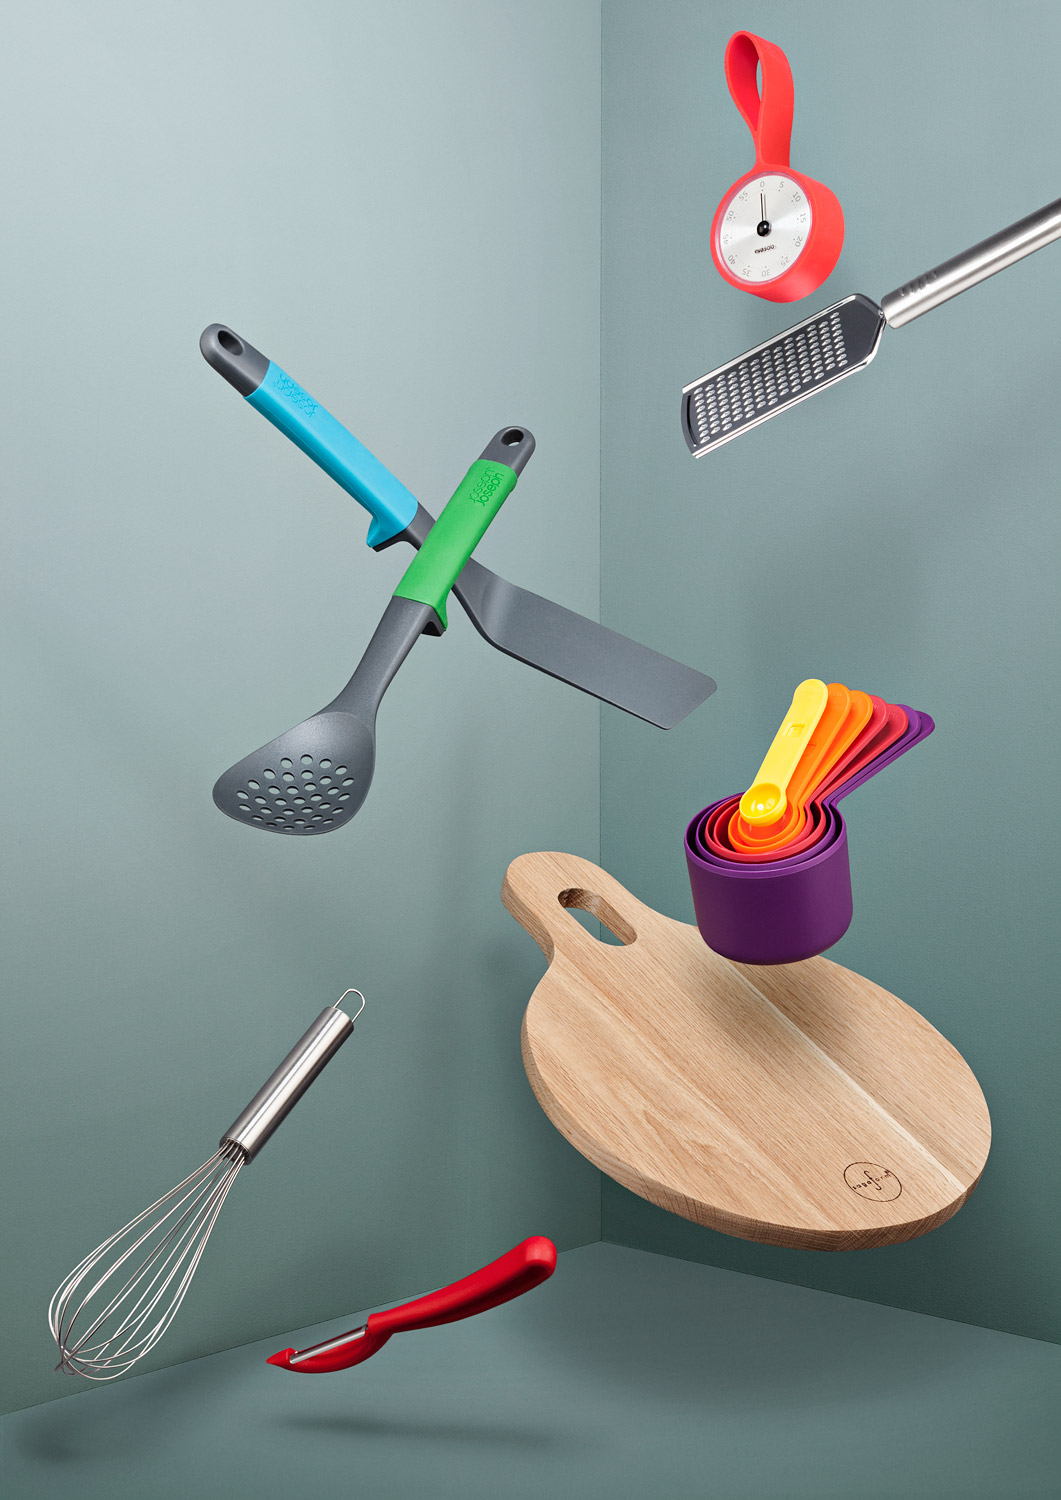 rvanderplank_jl_kitchenware-2-v1.jpg